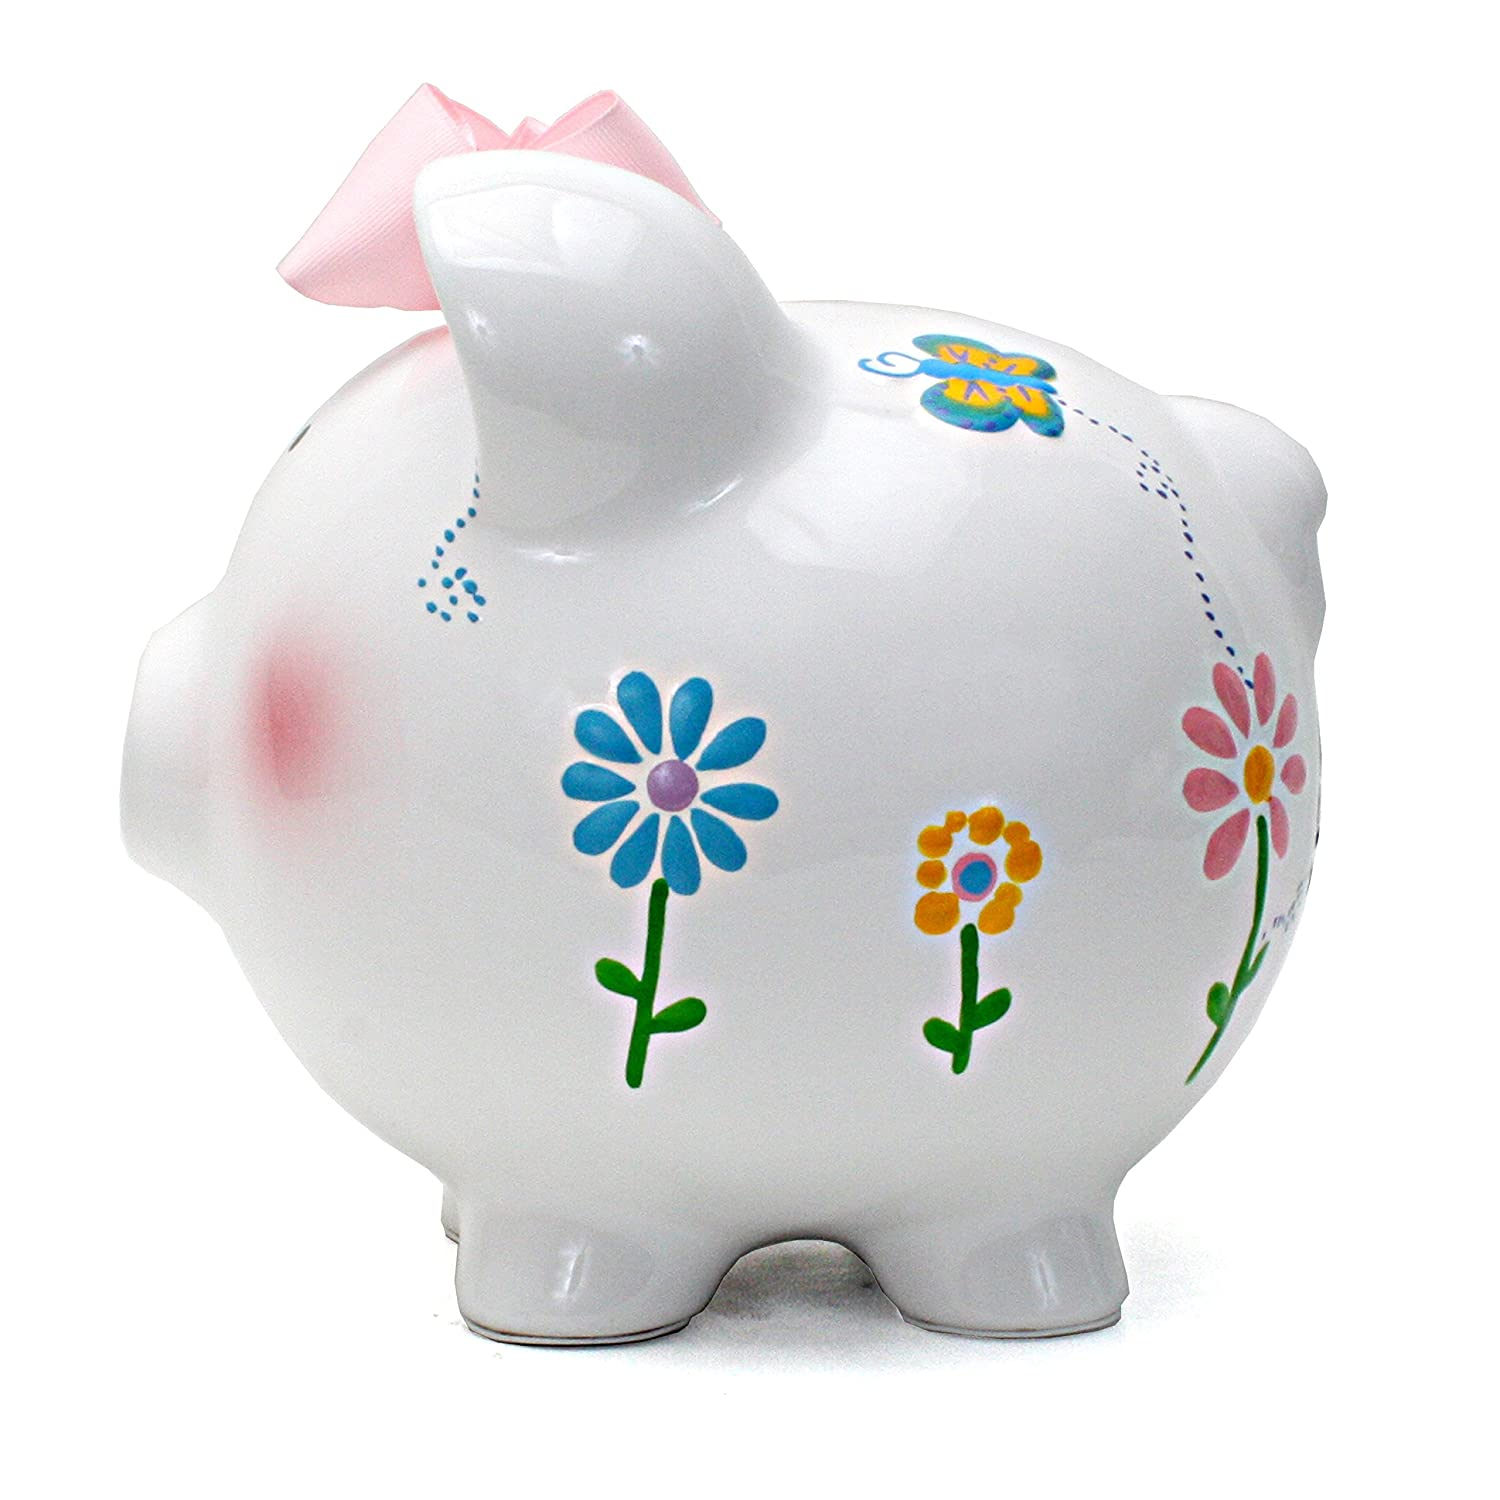 Sprinkle Cupcake Child to Cherish Ceramic Piggy Bank for Girls